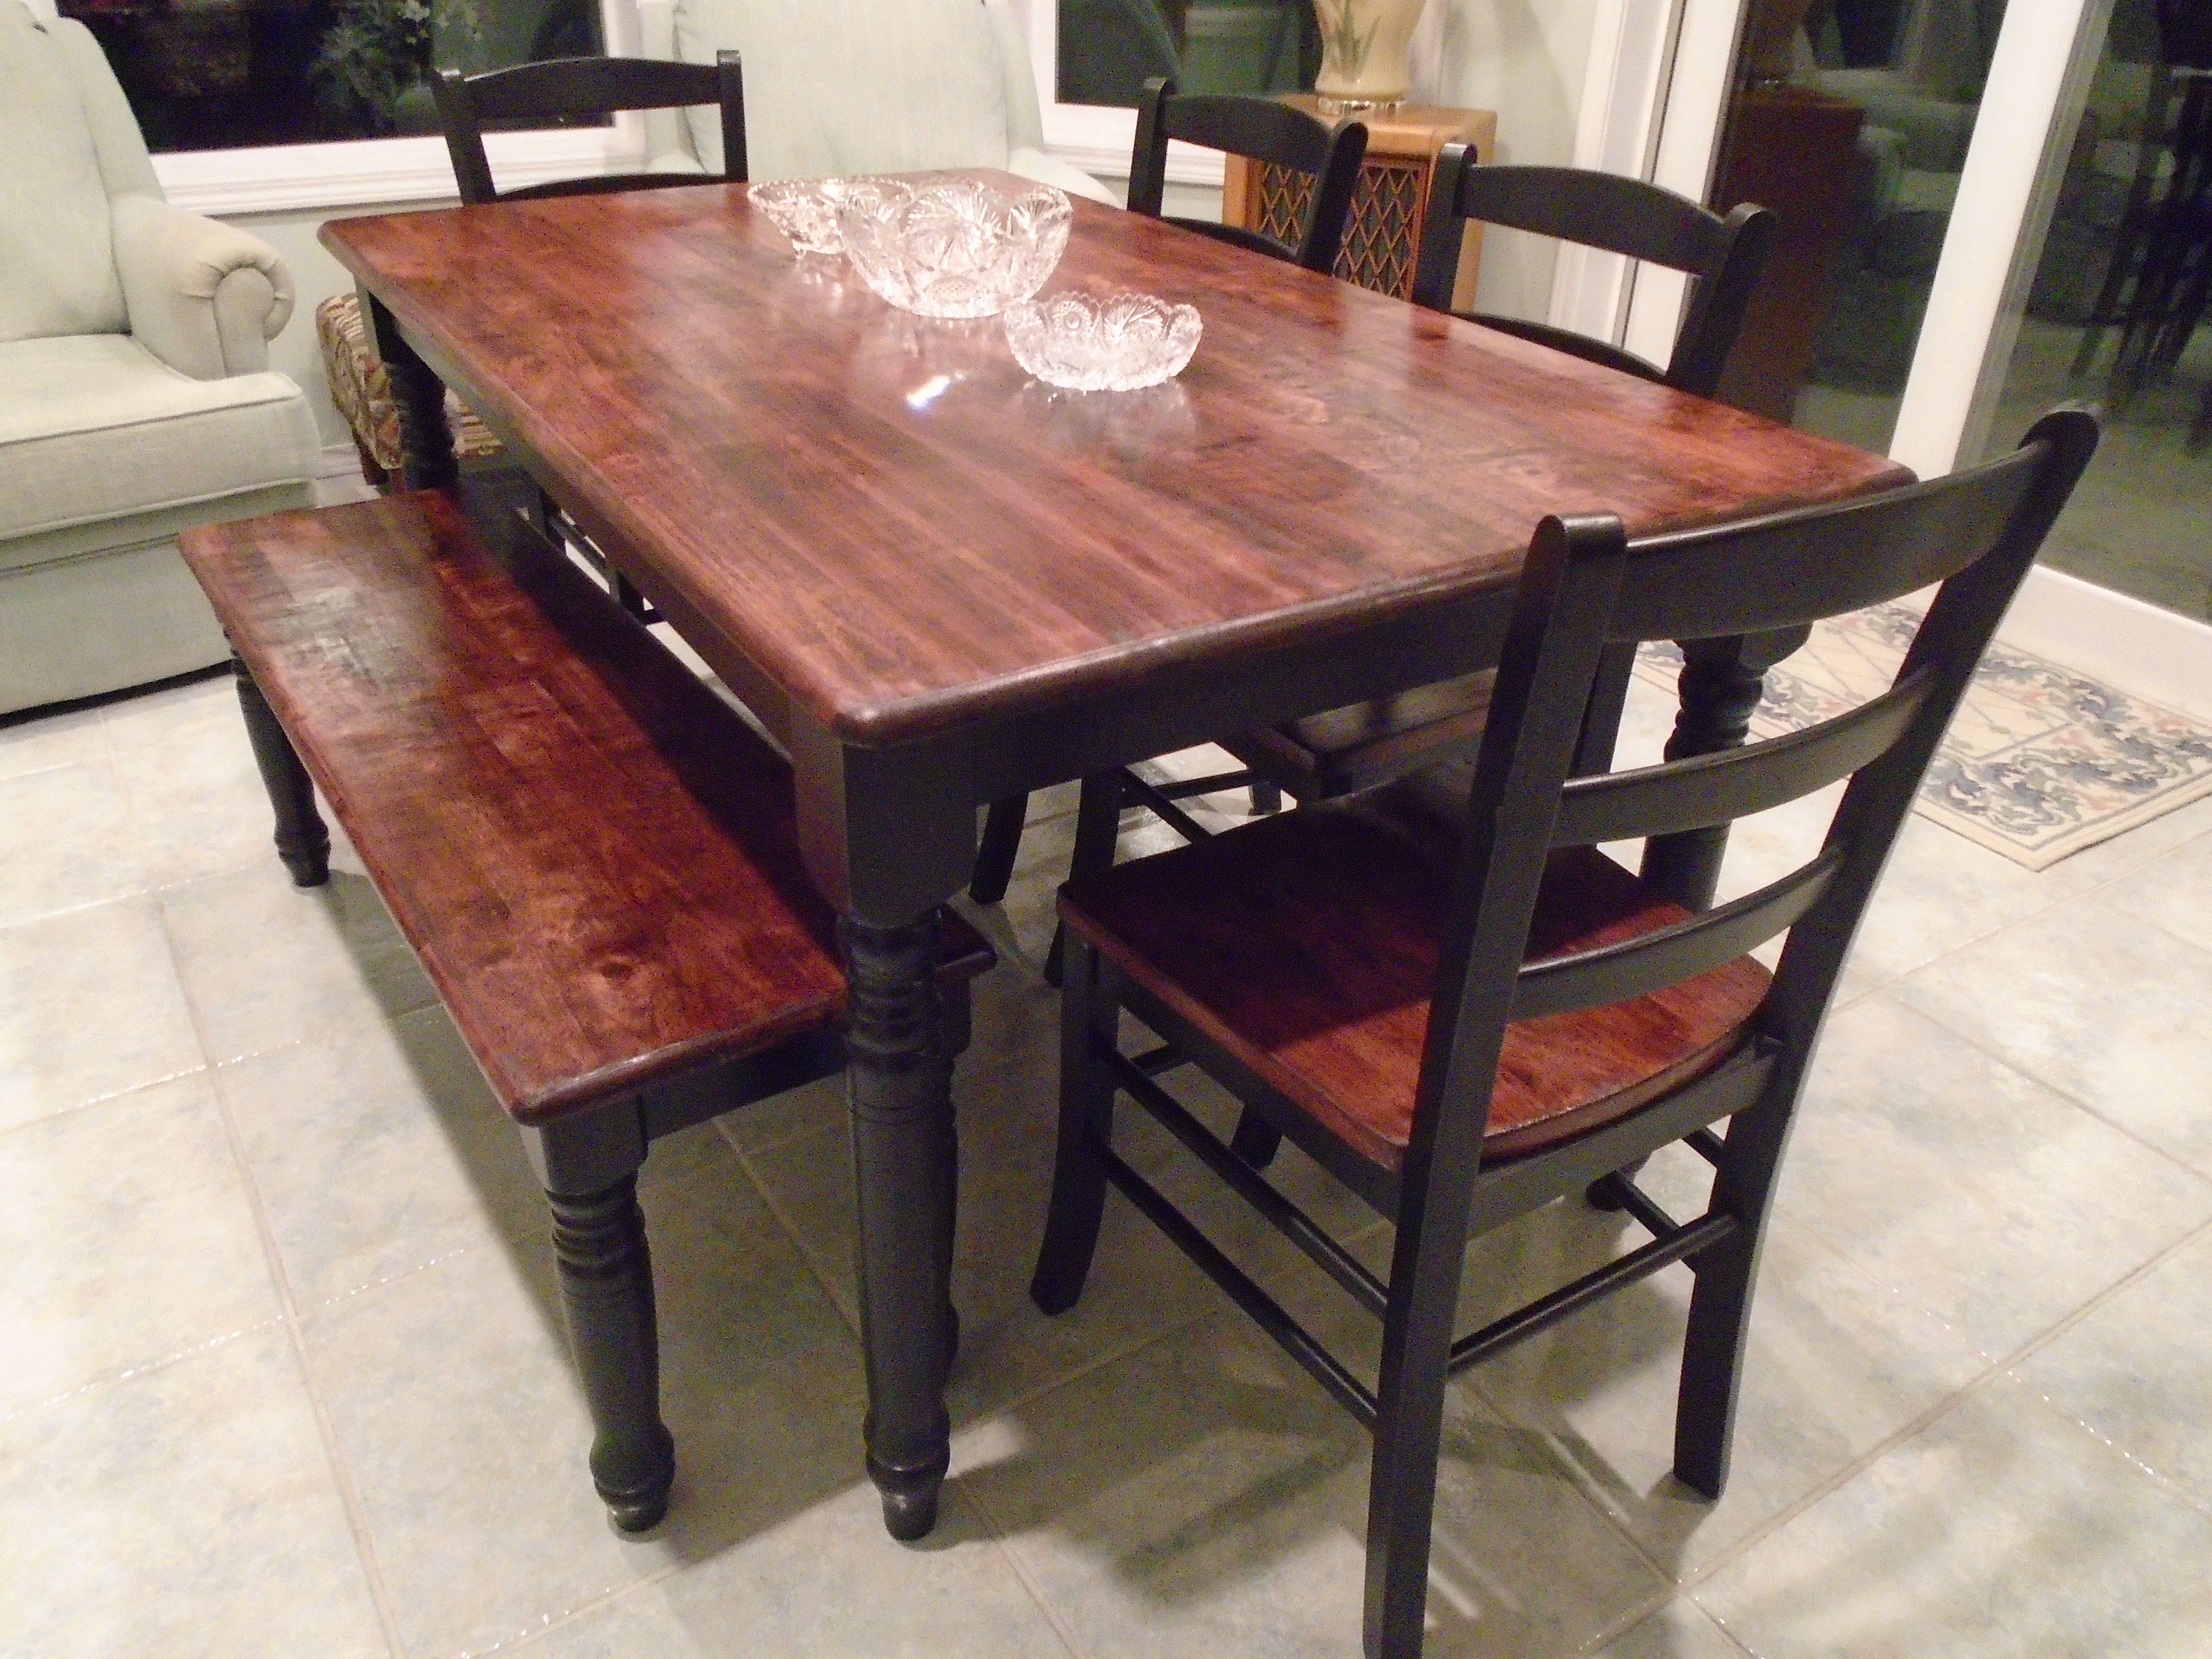 Painted farmhouse table and chairs - Rustic Farmhouse Table Brown Stained Top Black Painted Legs 4 Black Chairs Brown